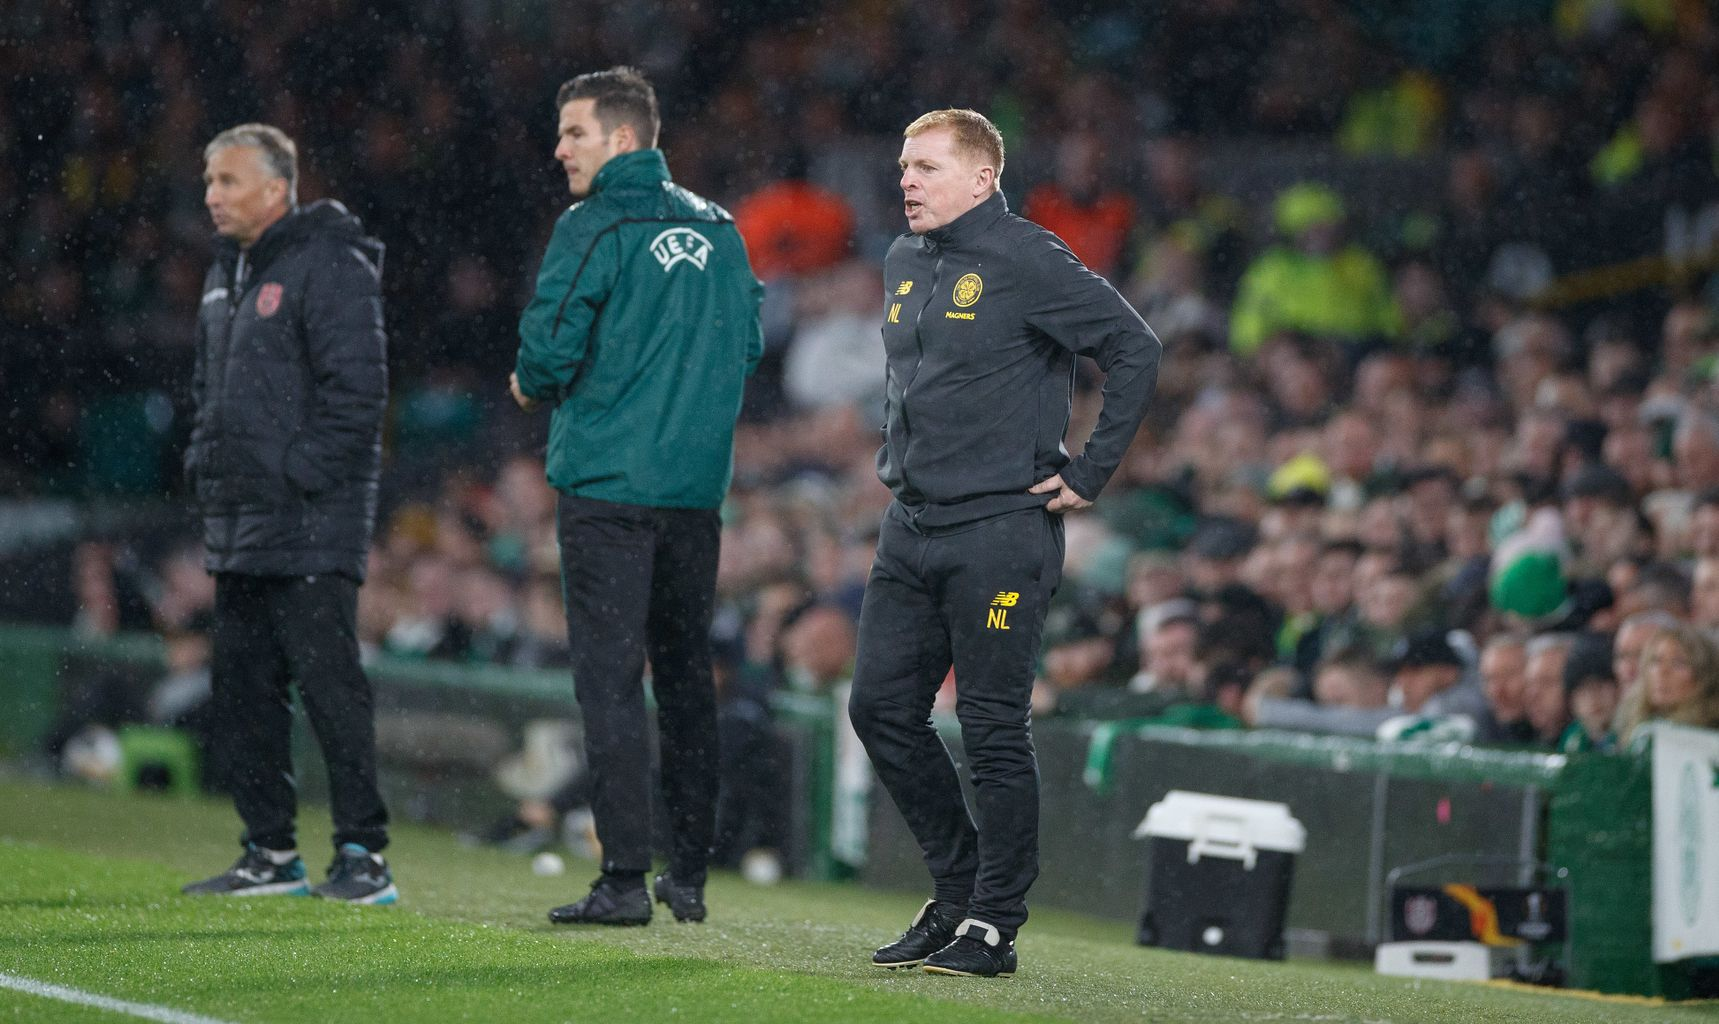 Celtic fan ran into dugout during game to take selfie with Neil Lennon